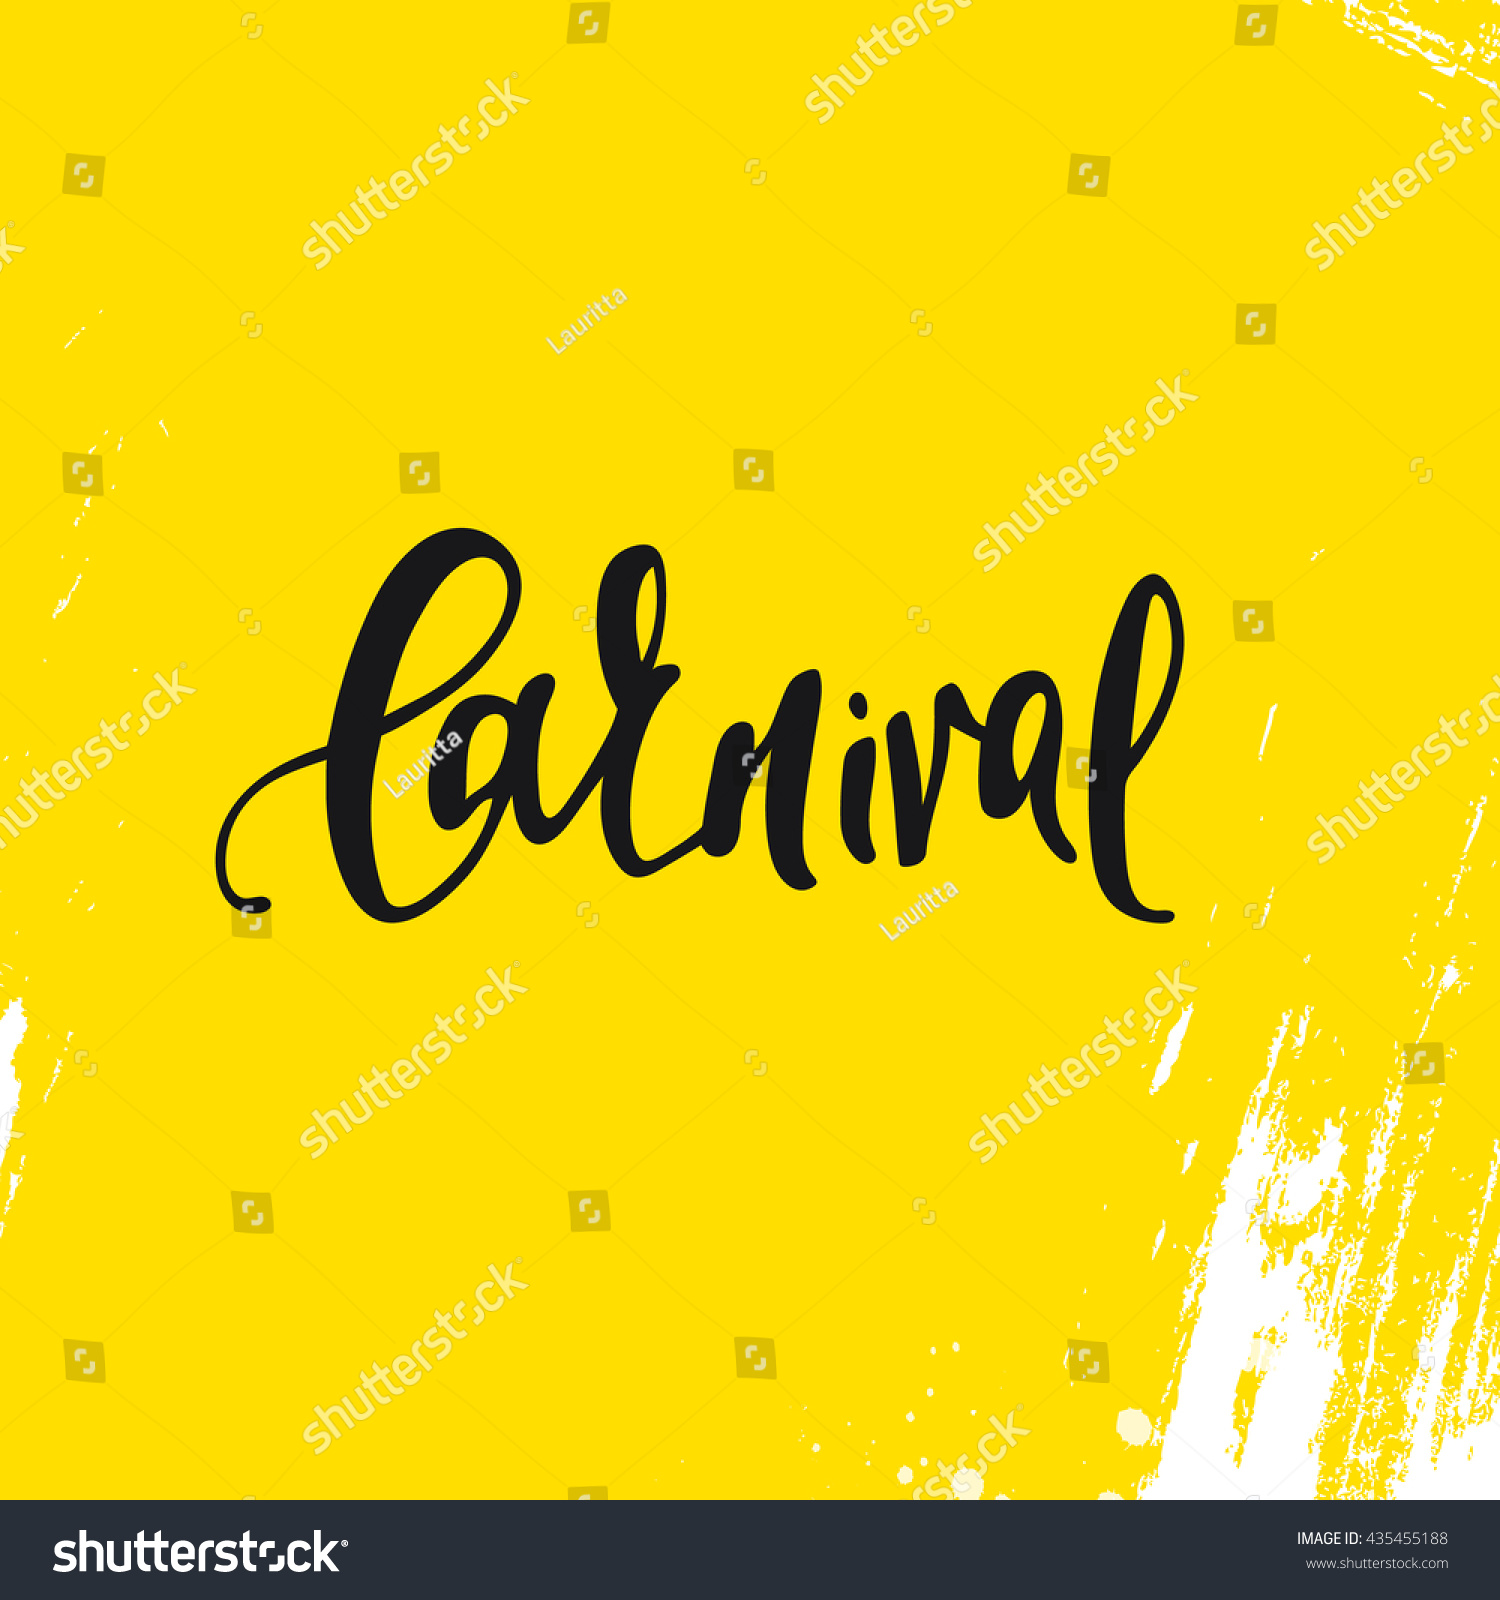 Inscription carnival background yellow calligraphy